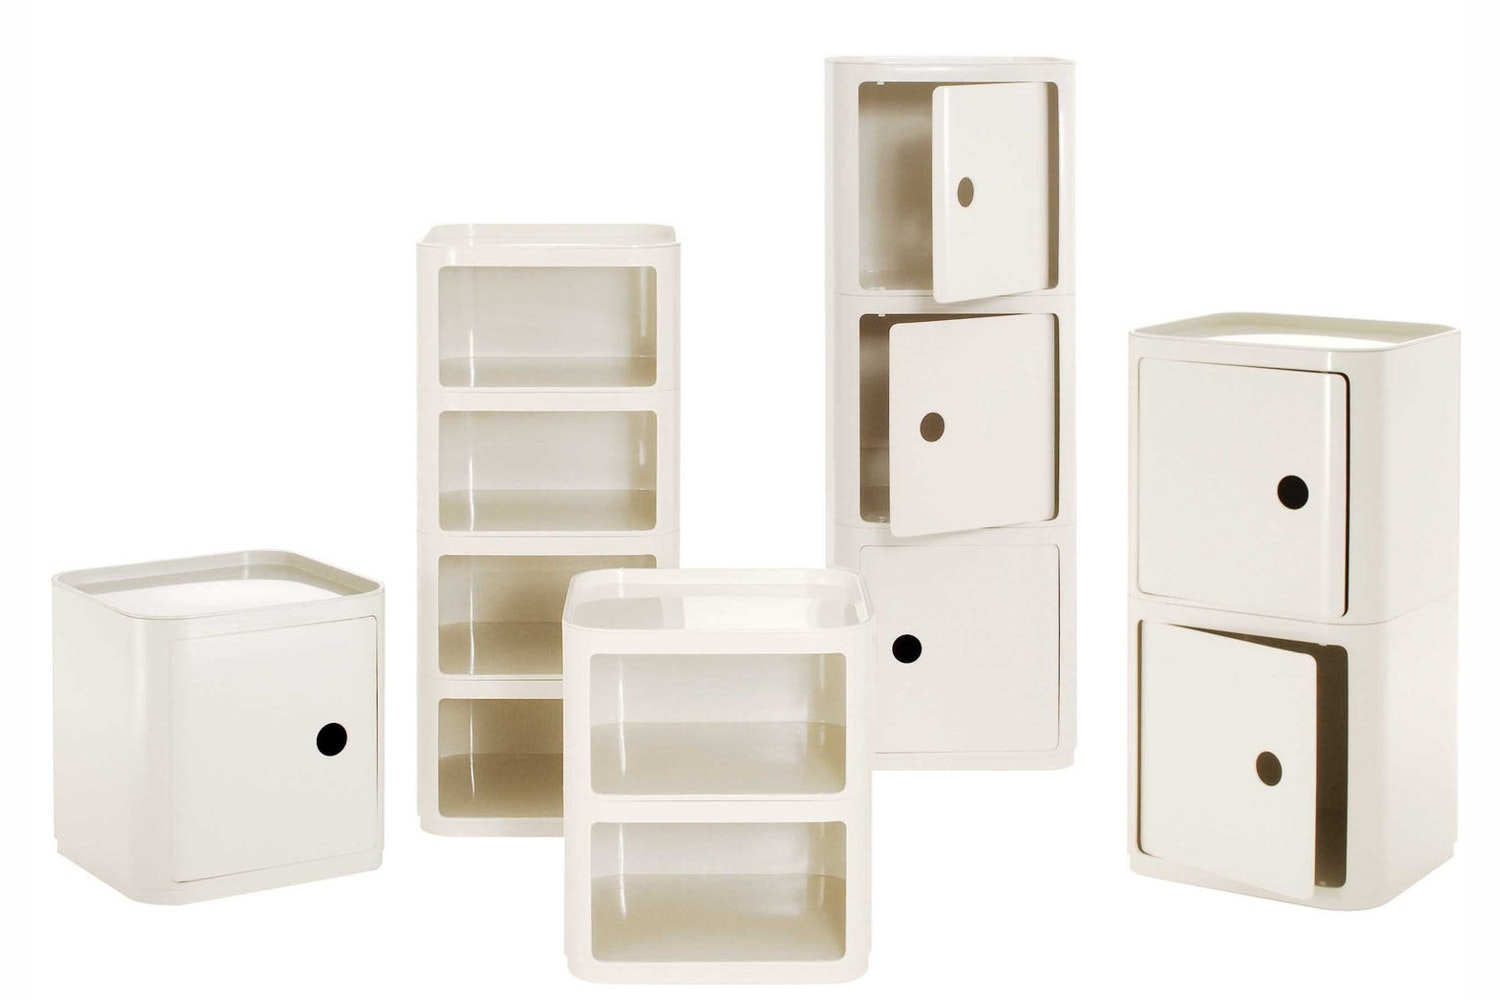 Componibili Square Modular Elements by Anna Castelli Ferrieri for Kartell